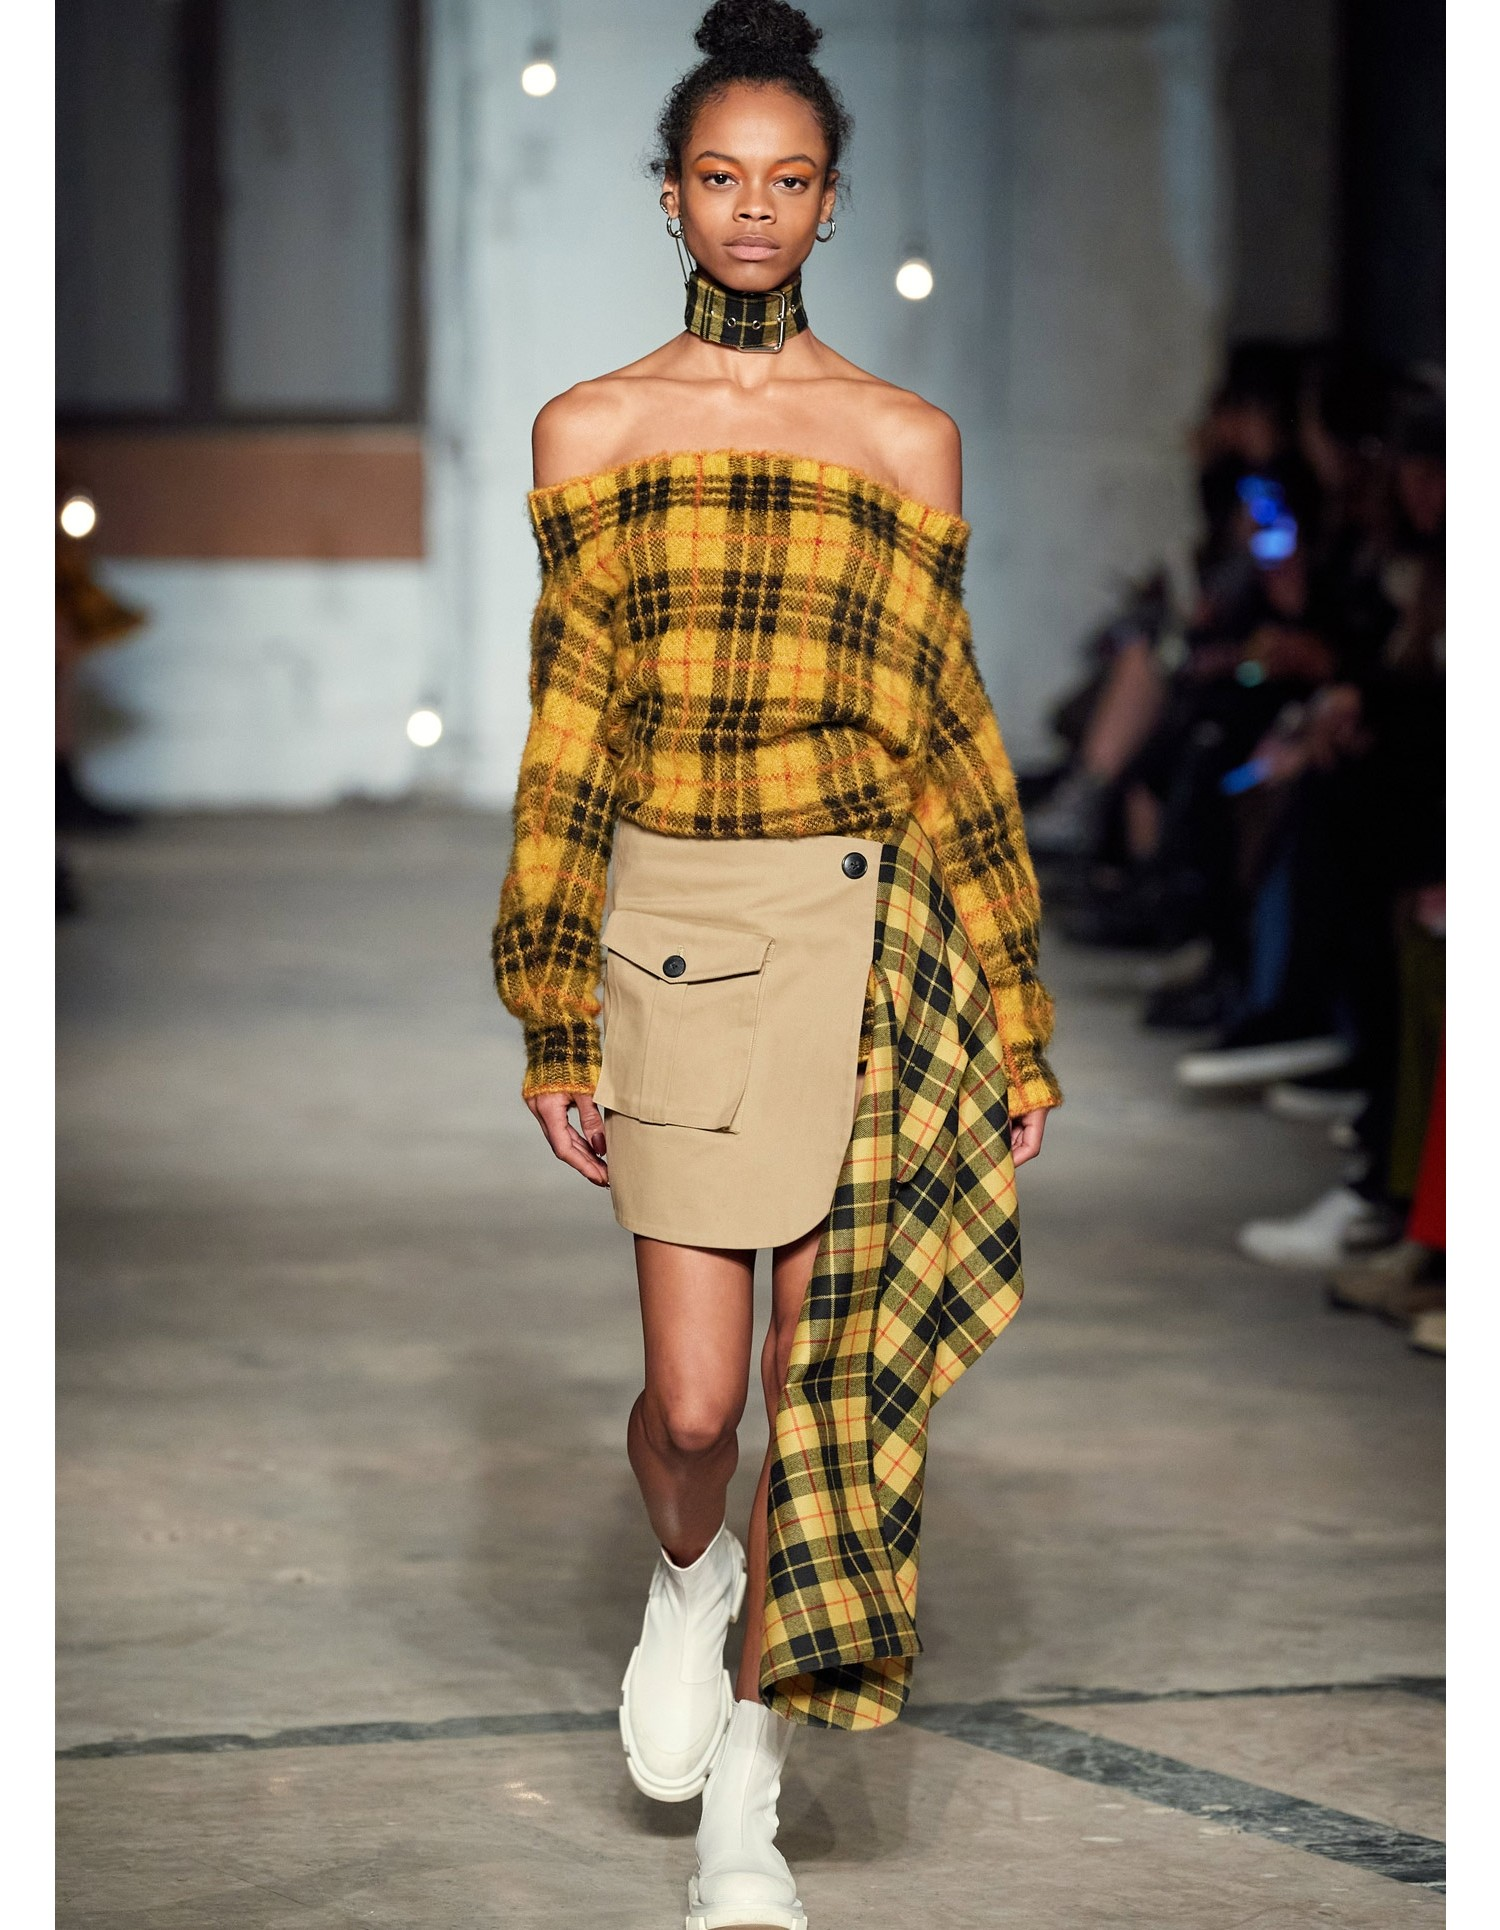 MONSE Tartan Pleated Cargo Skirt in Mustard Multi on Model Runway Look